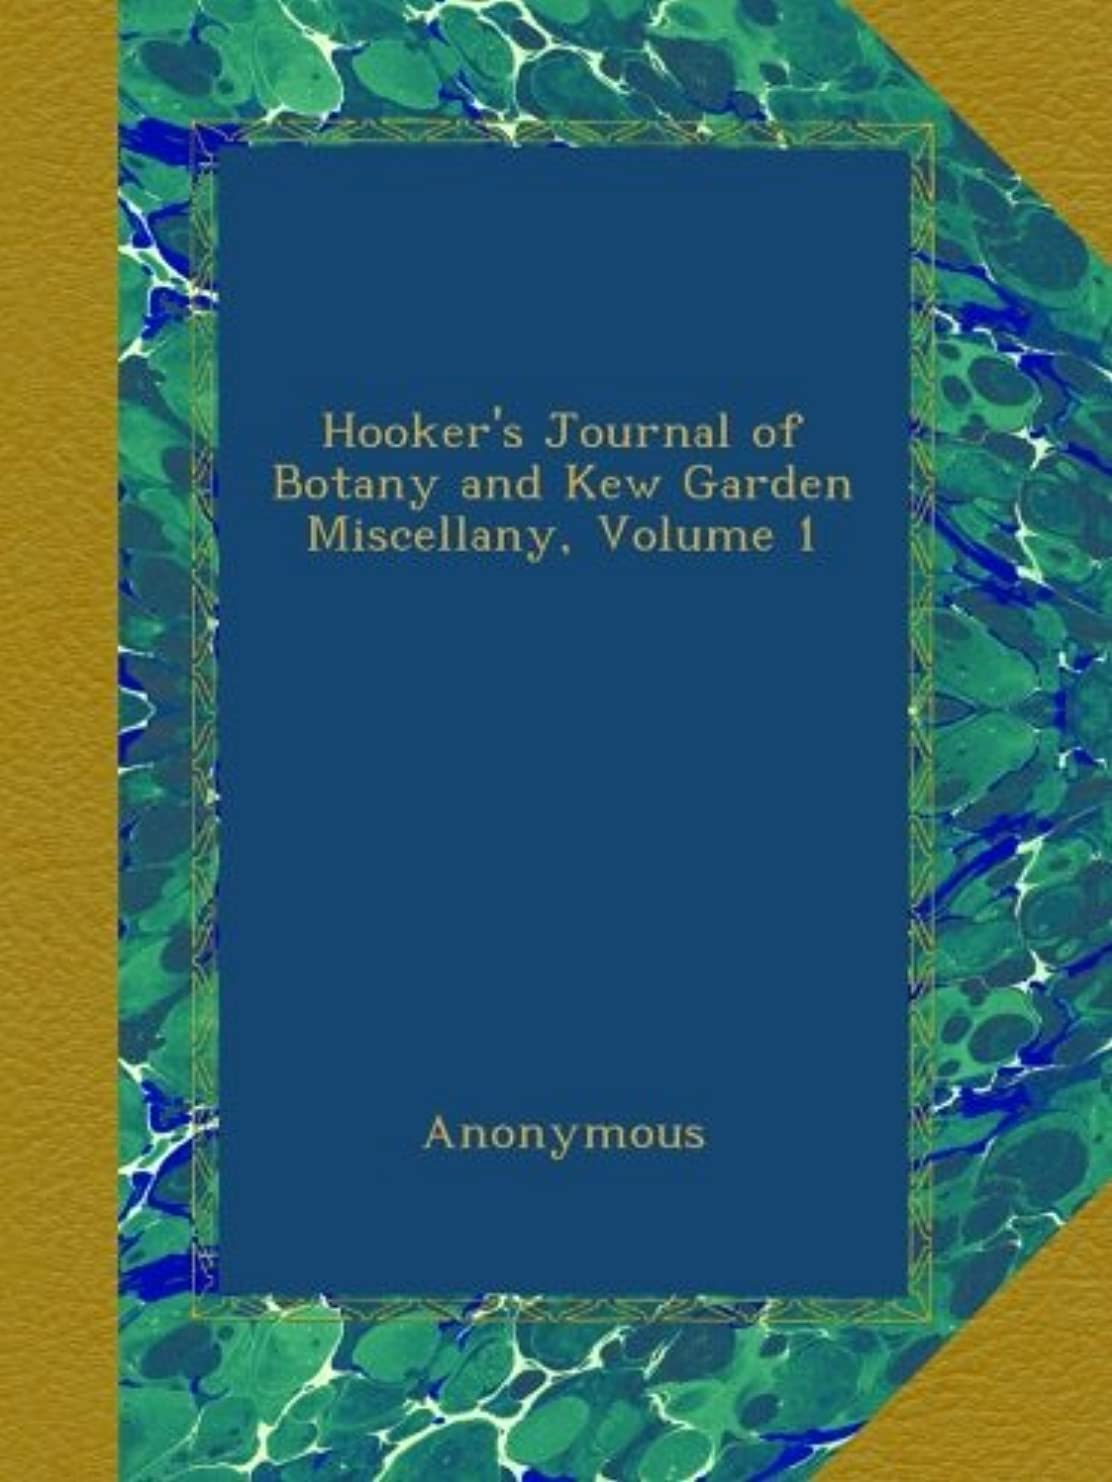 意志に反する航空練習したHooker's Journal of Botany and Kew Garden Miscellany, Volume 1